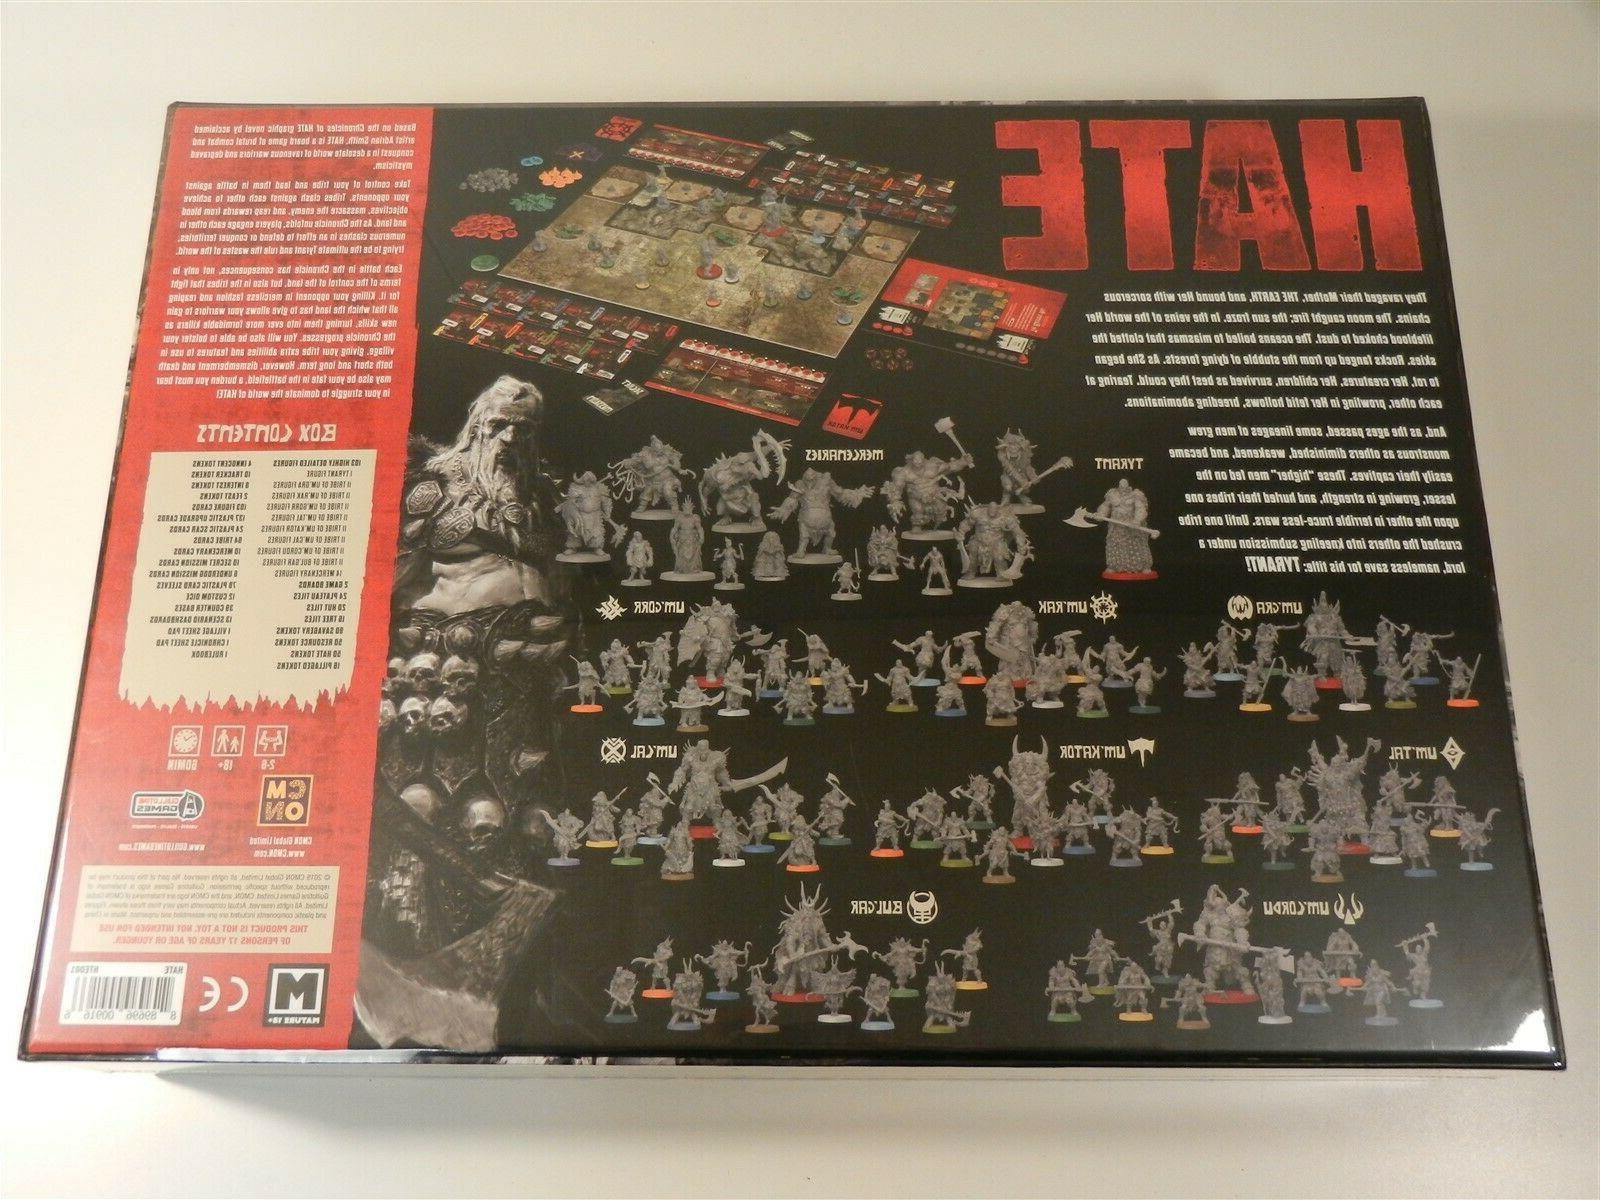 In Kickstarter Exclusive Board Game by CMON Tyrant Pledge + Stretch